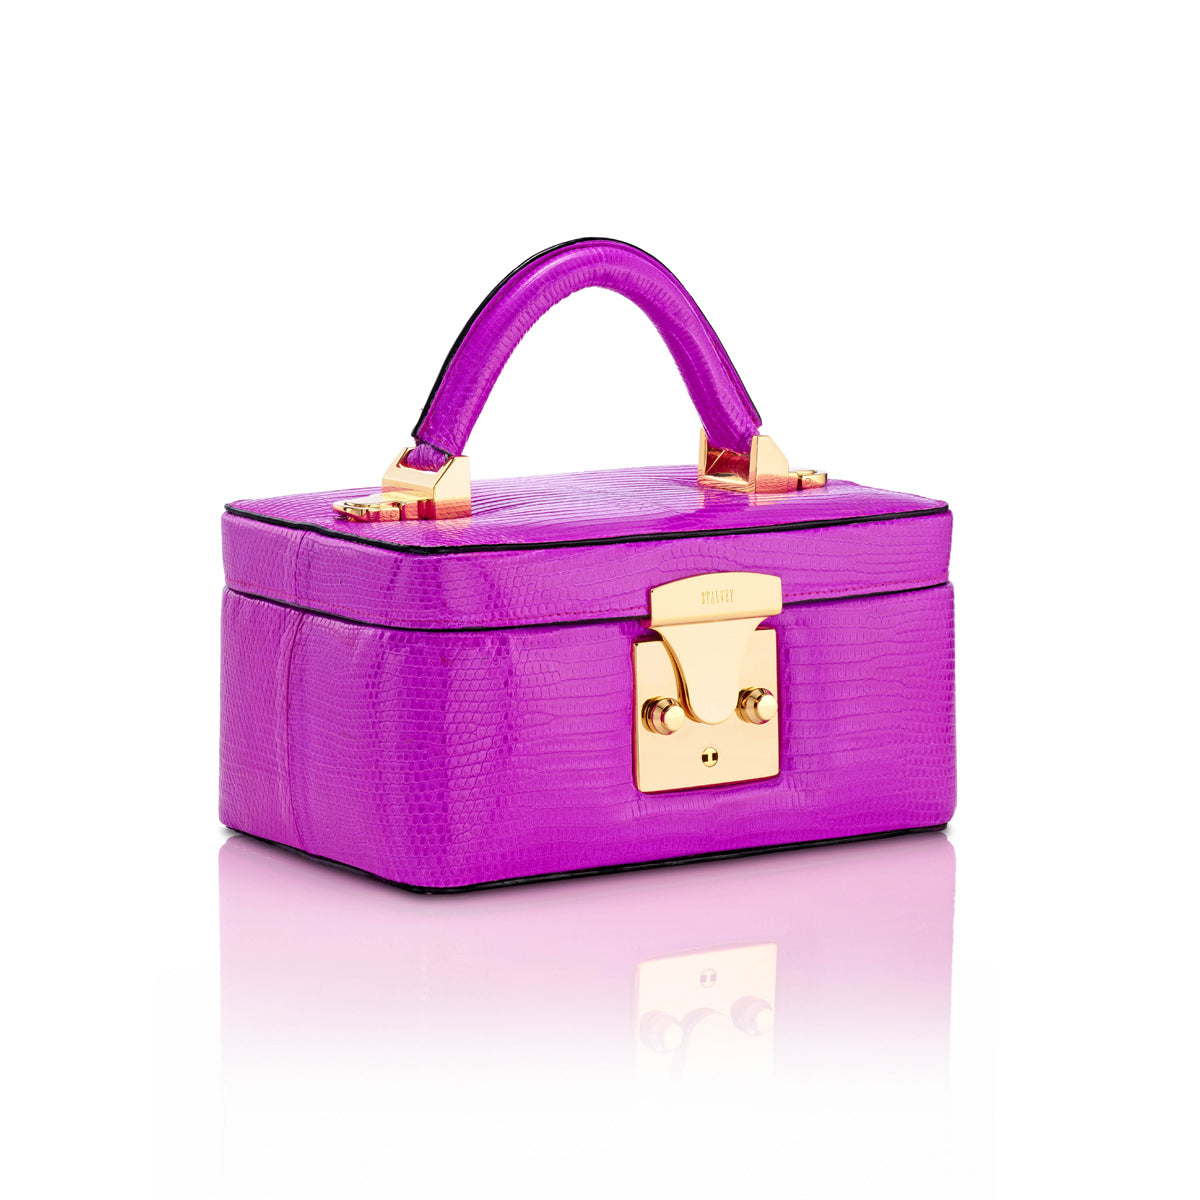 Beauty Case 1.7 Mini - Fuchsia Lizard